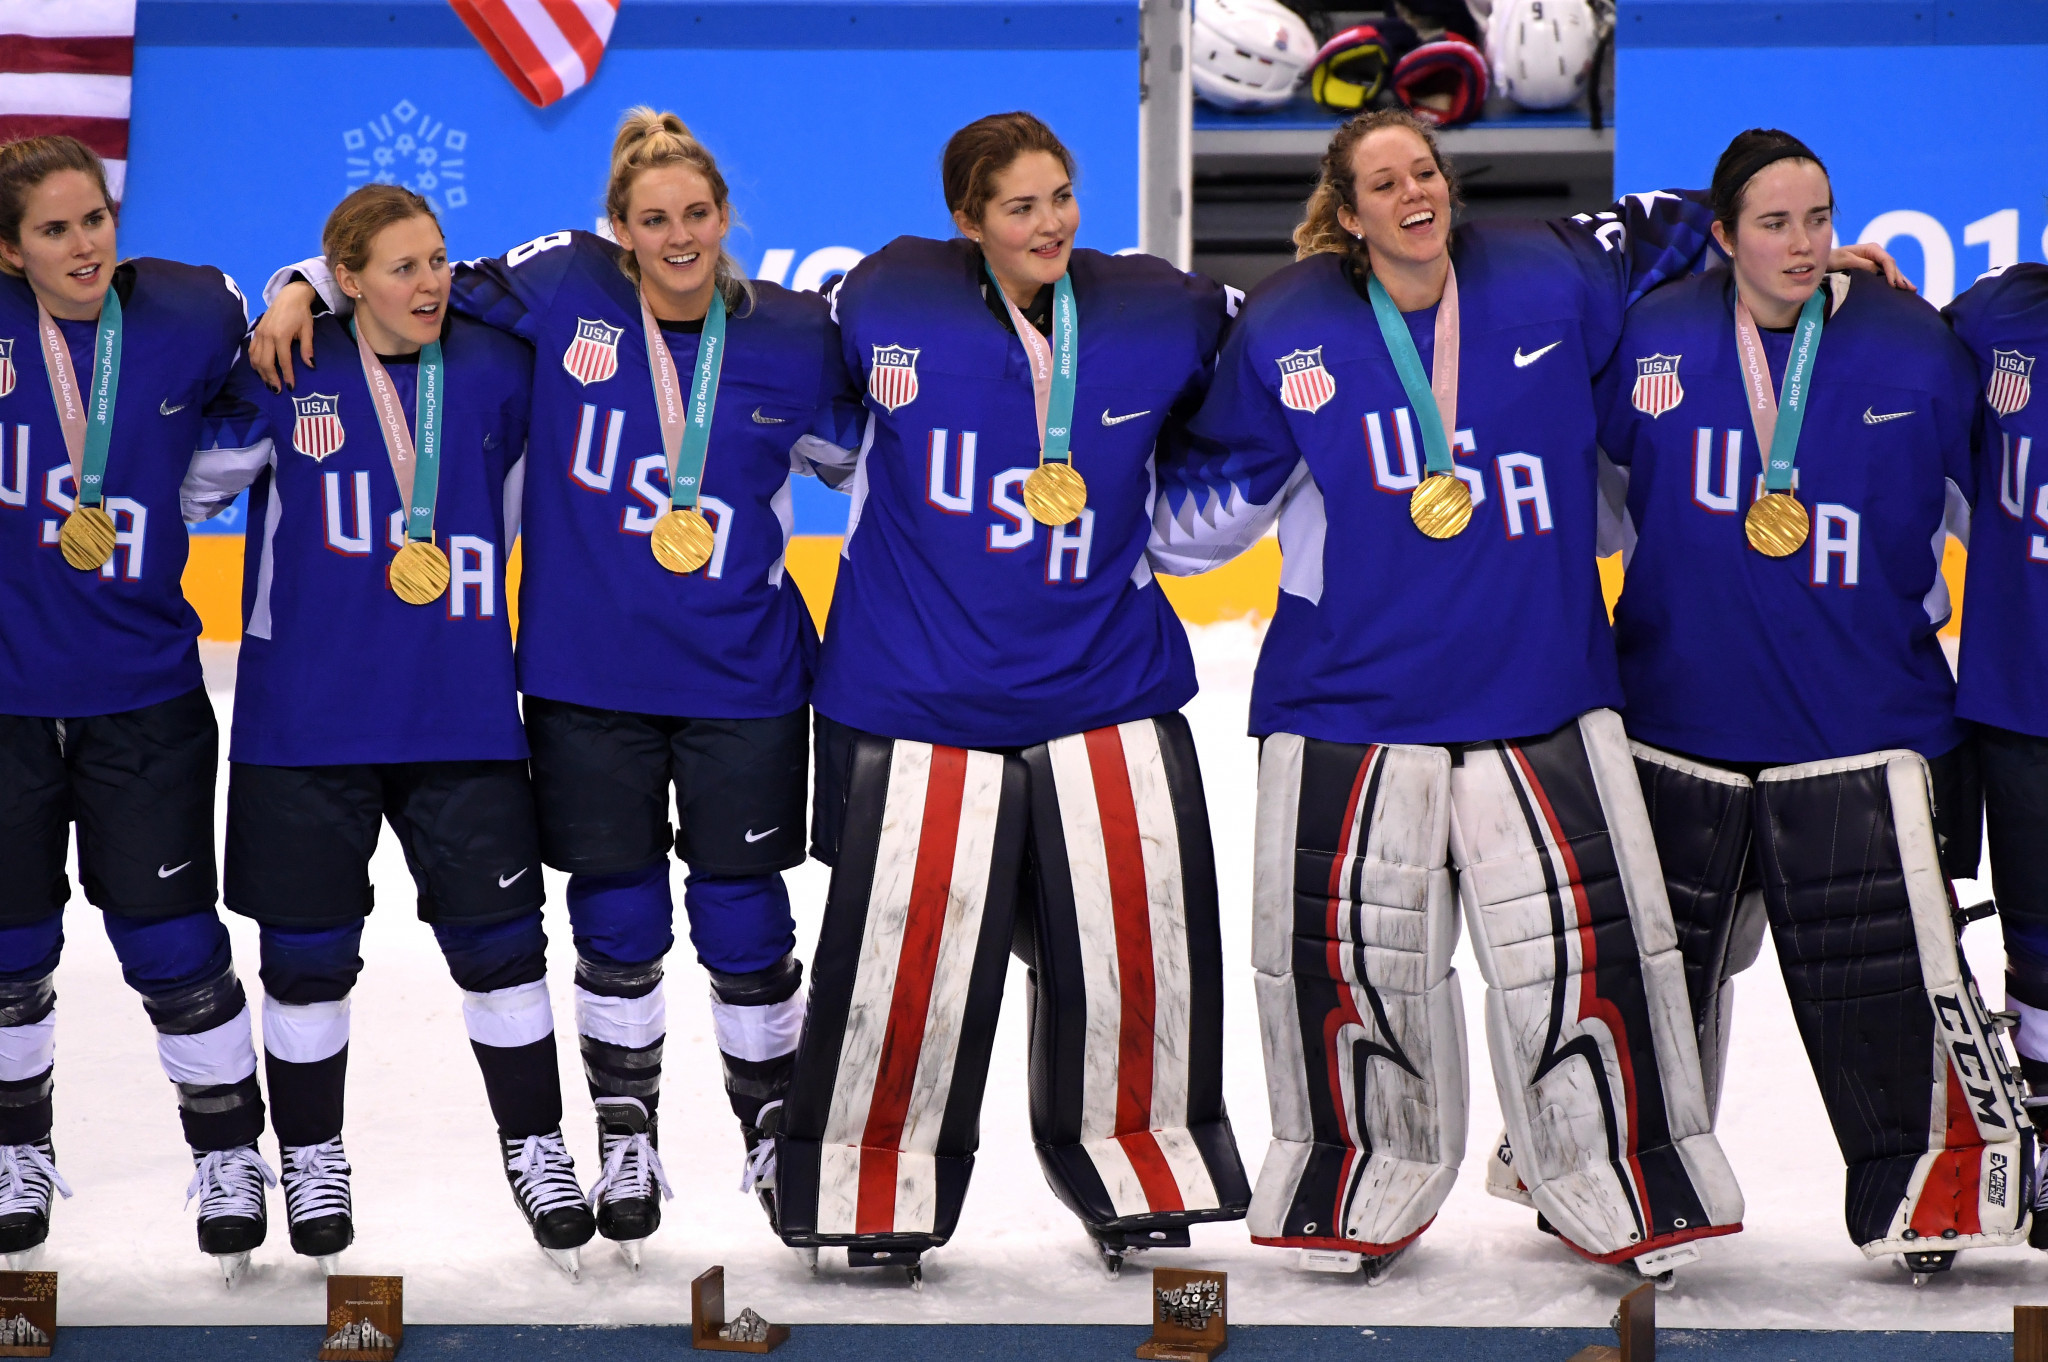 The United States won the Pyeongchang 2018 women's ice hockey gold medal ©Getty Images